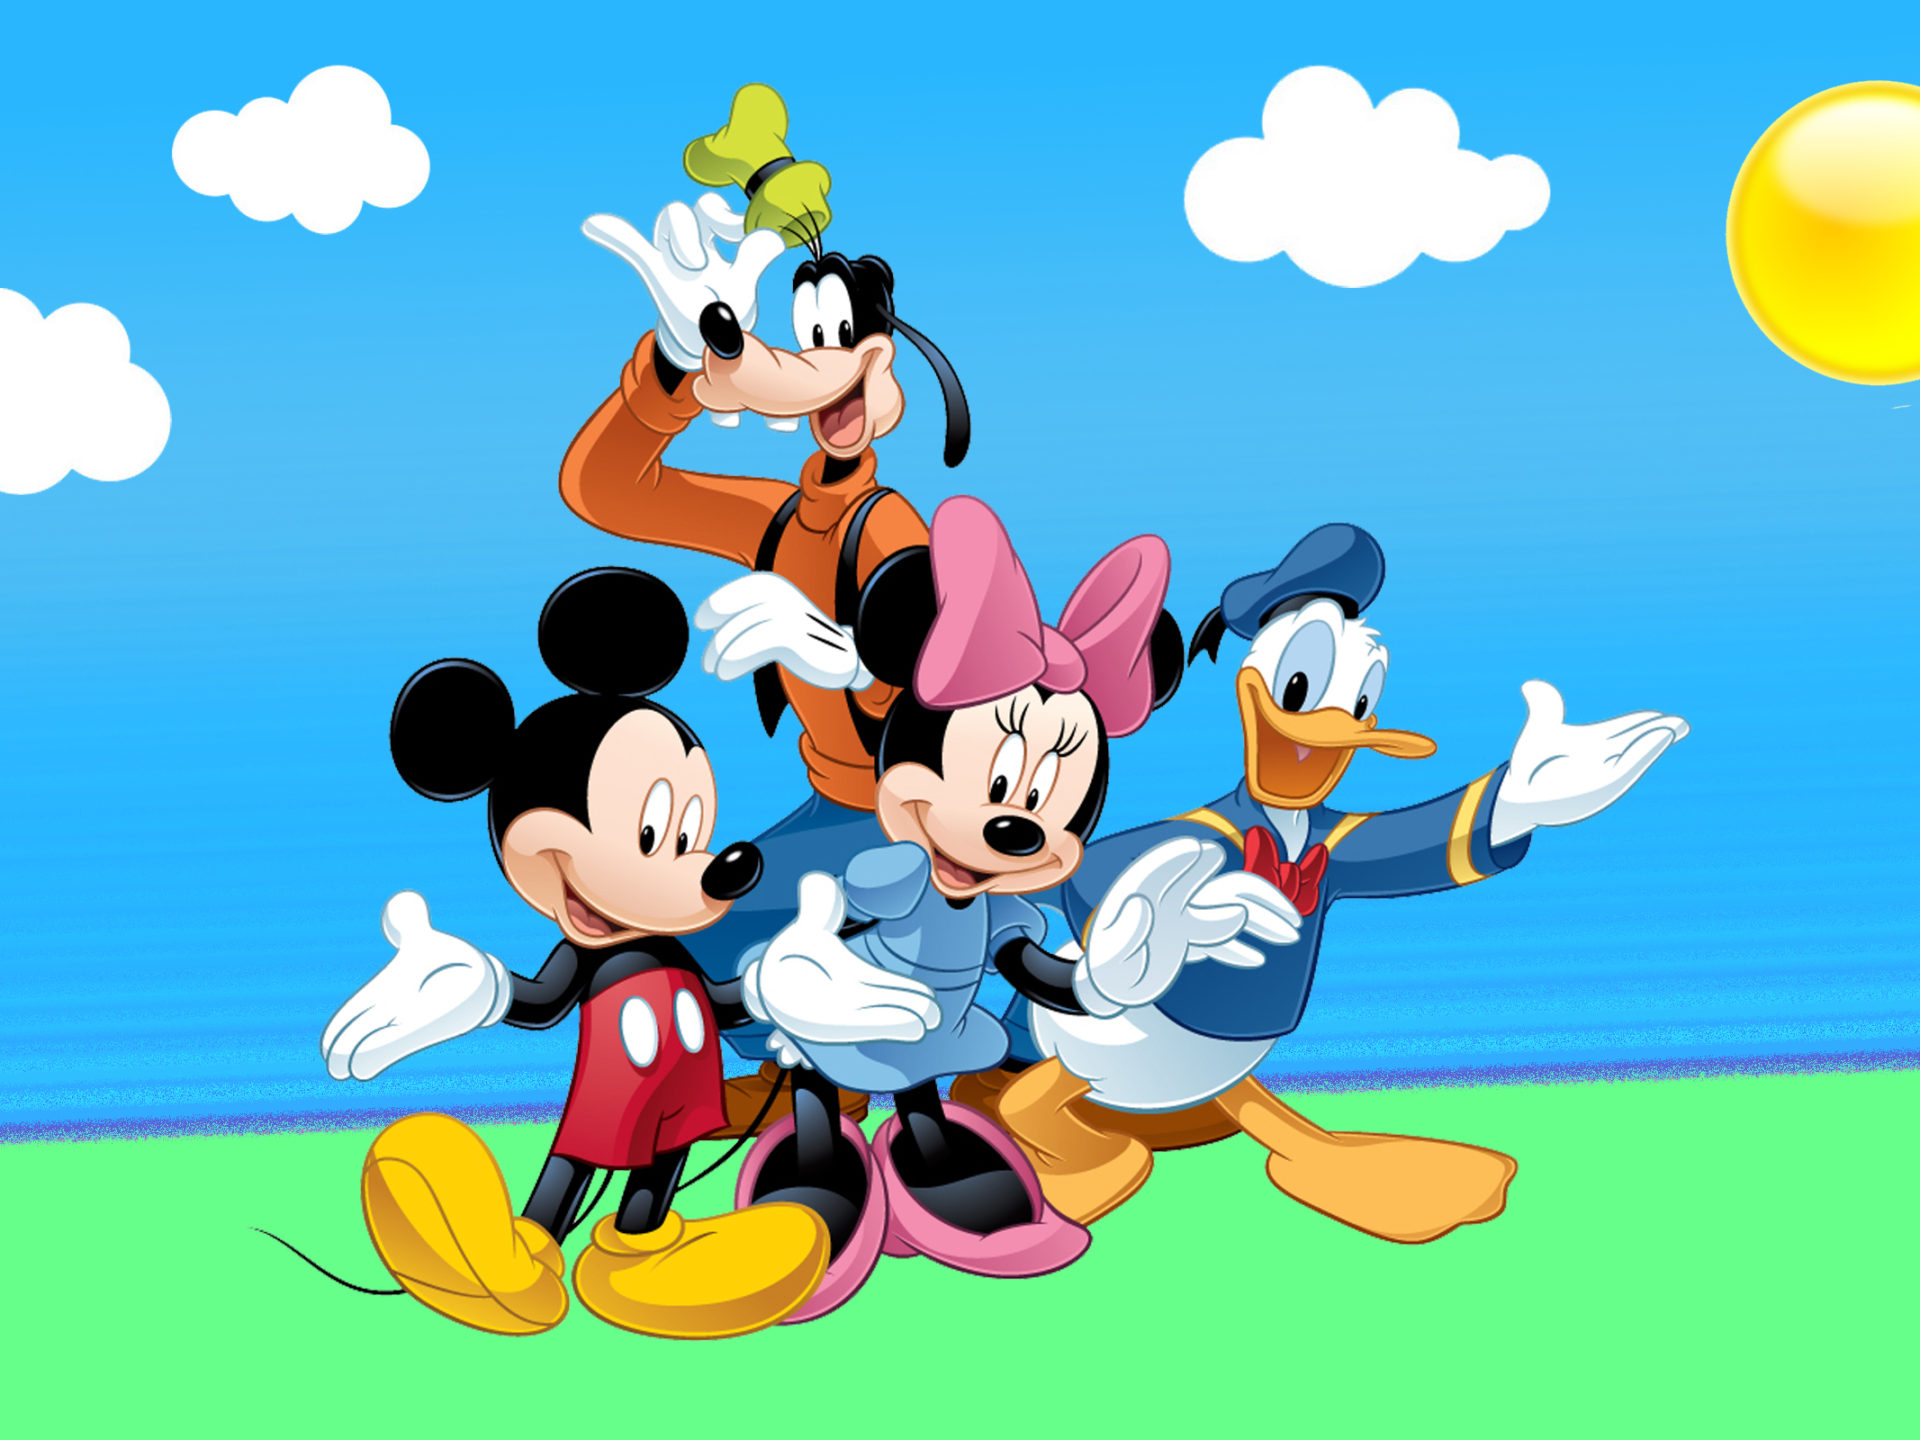 Disney Cars Wallpapers Free Donald Duck Mickey Mouse And Goofy Cartoon Wallpaper Hd